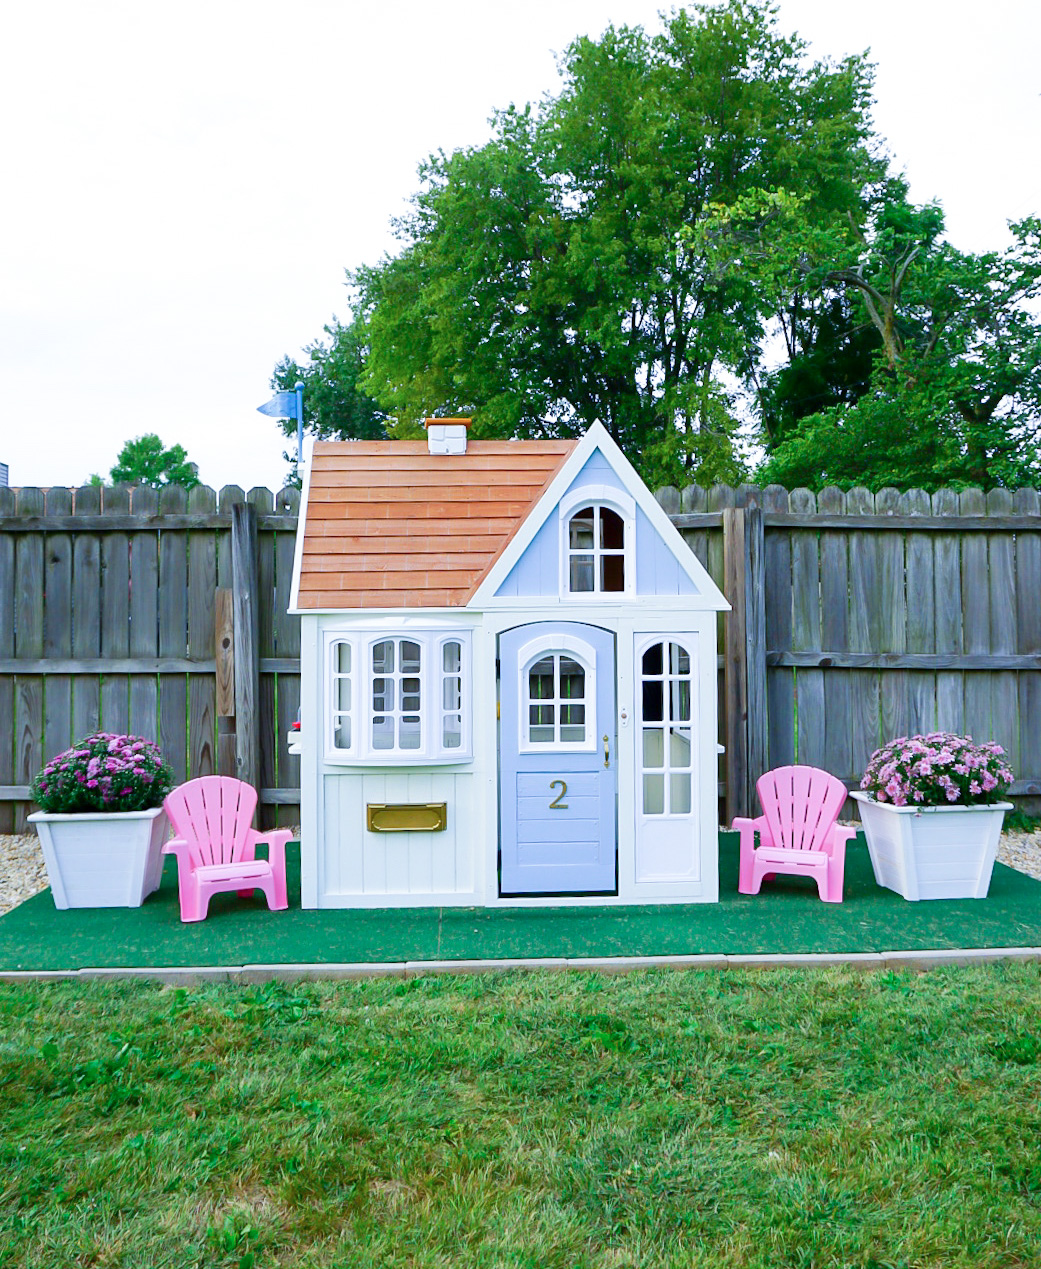 before and after playhouse, toddler playhouse remodel, blue outdoor playhouse, blogger playhouse, playhouse guide, how to DIY playhouse